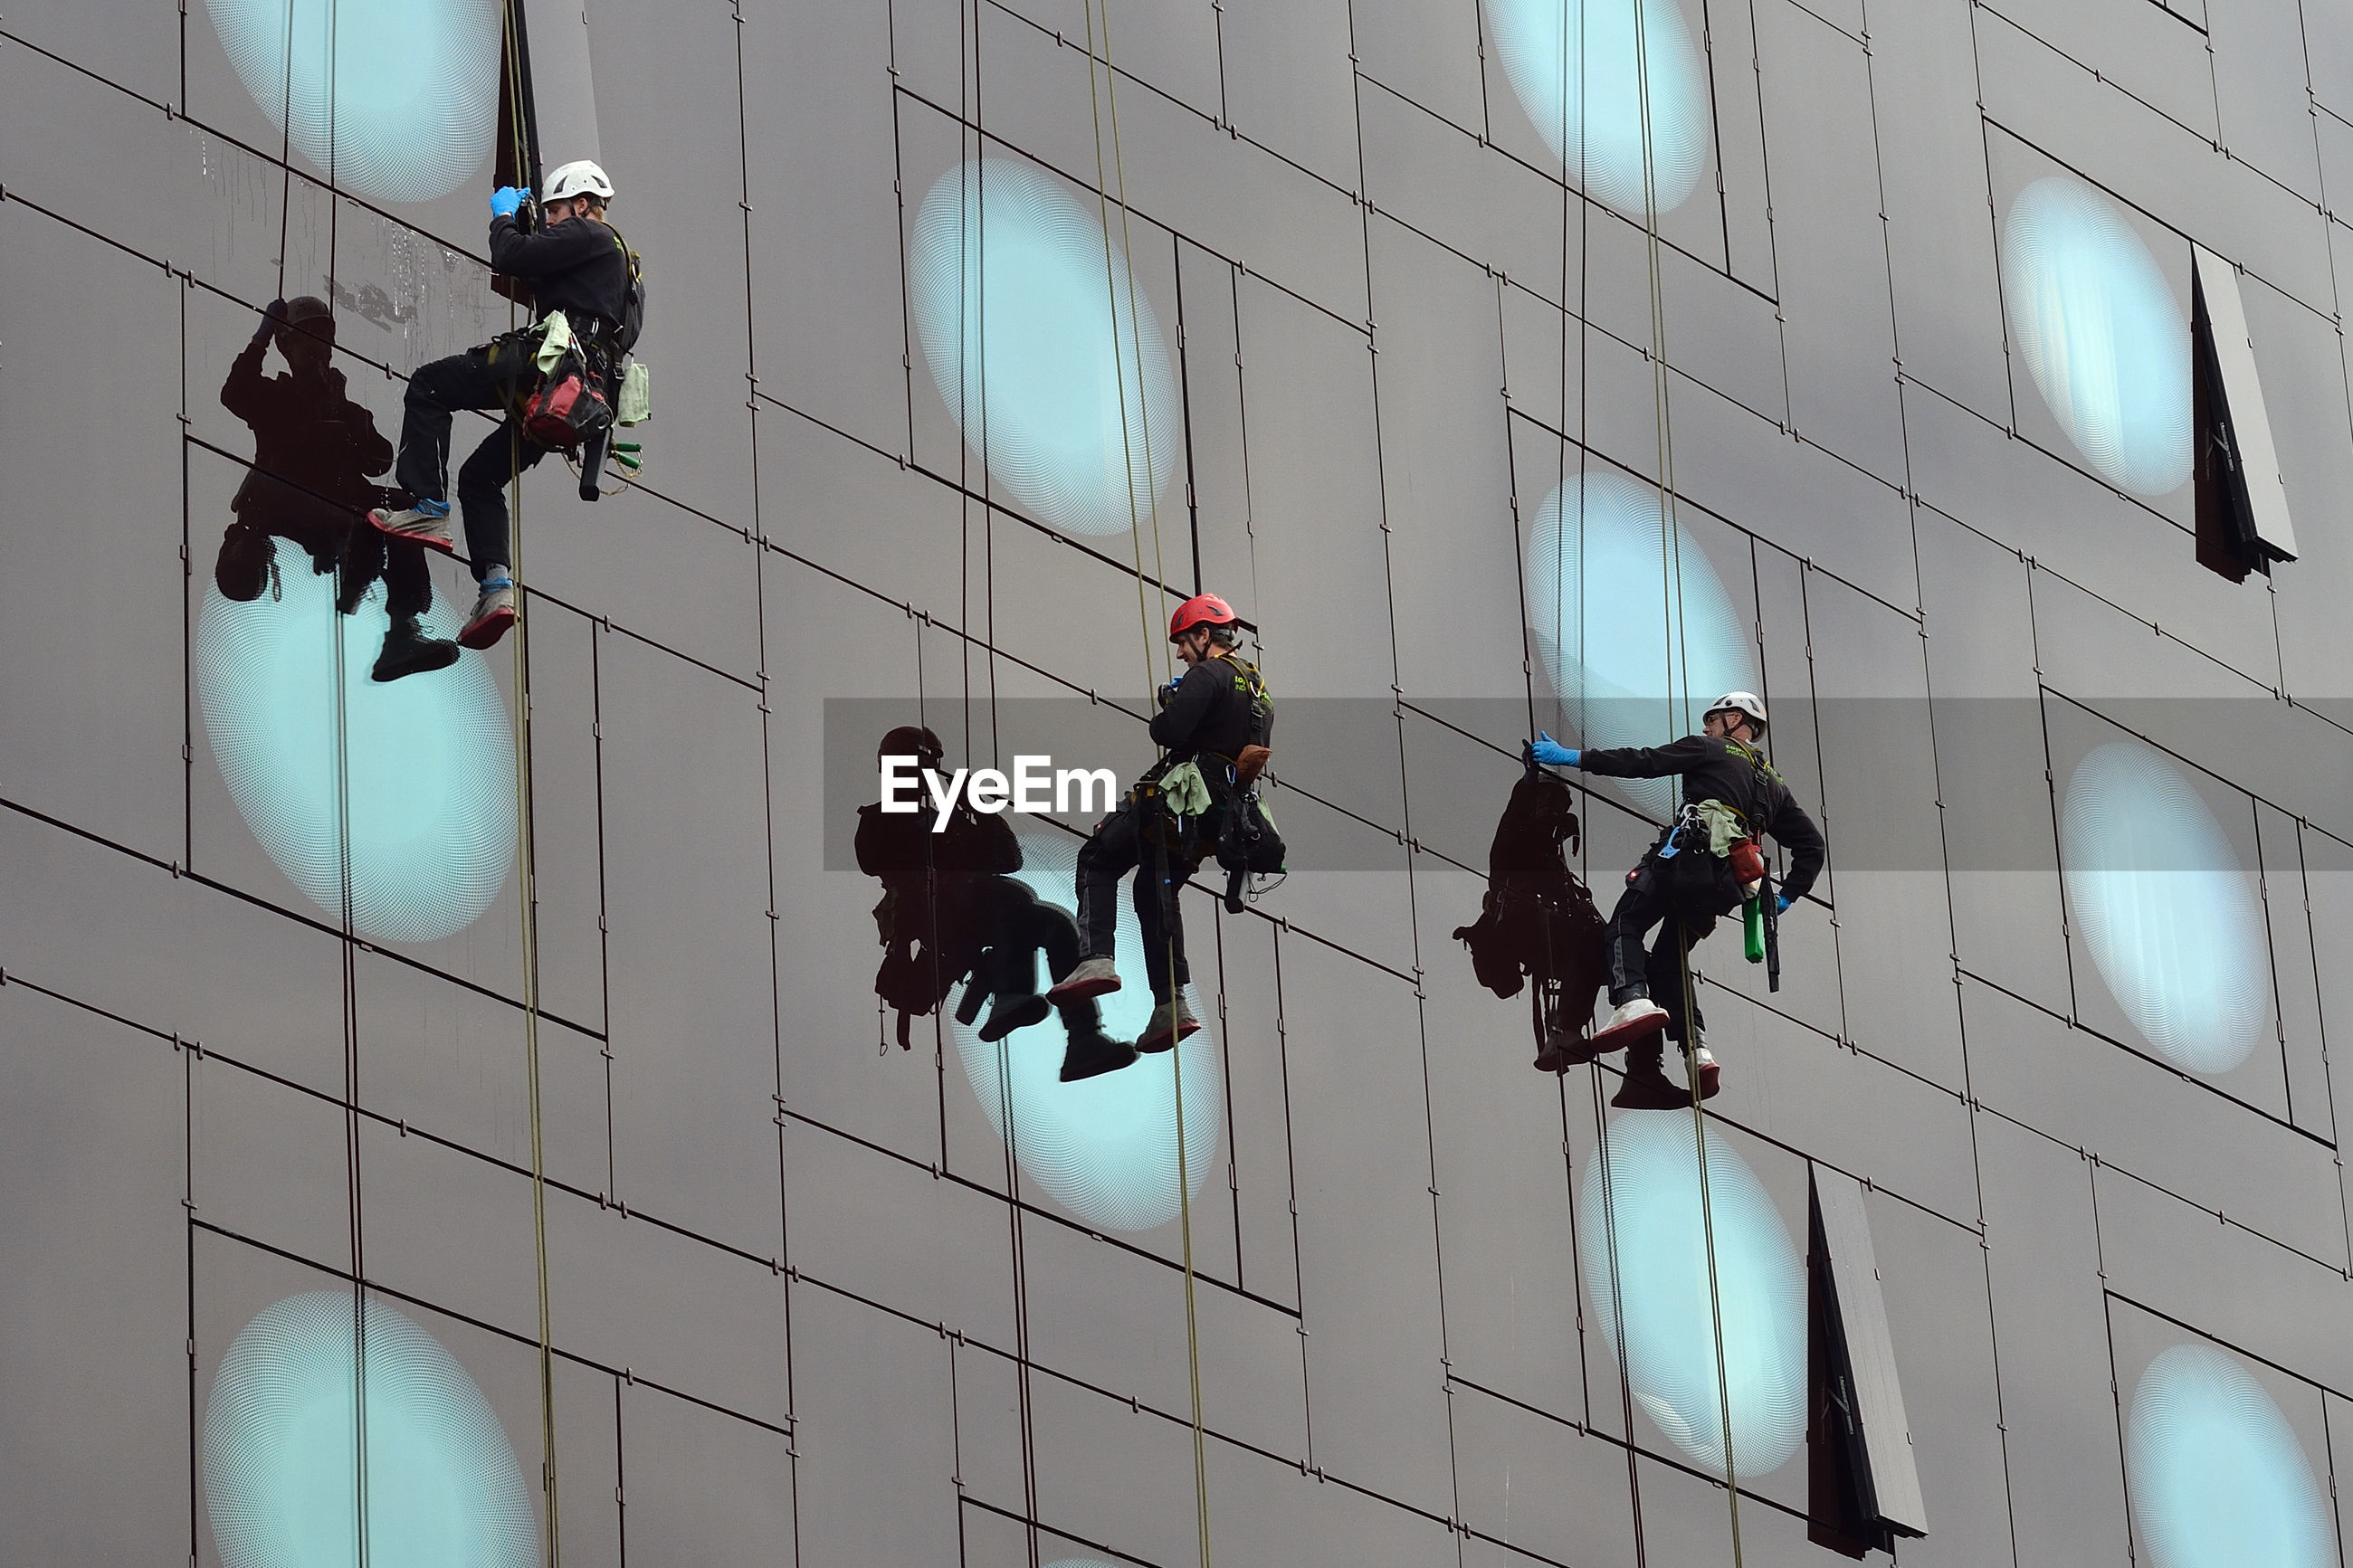 LOW ANGLE VIEW OF PEOPLE WORKING ON ROPE TIED TO BUILDING